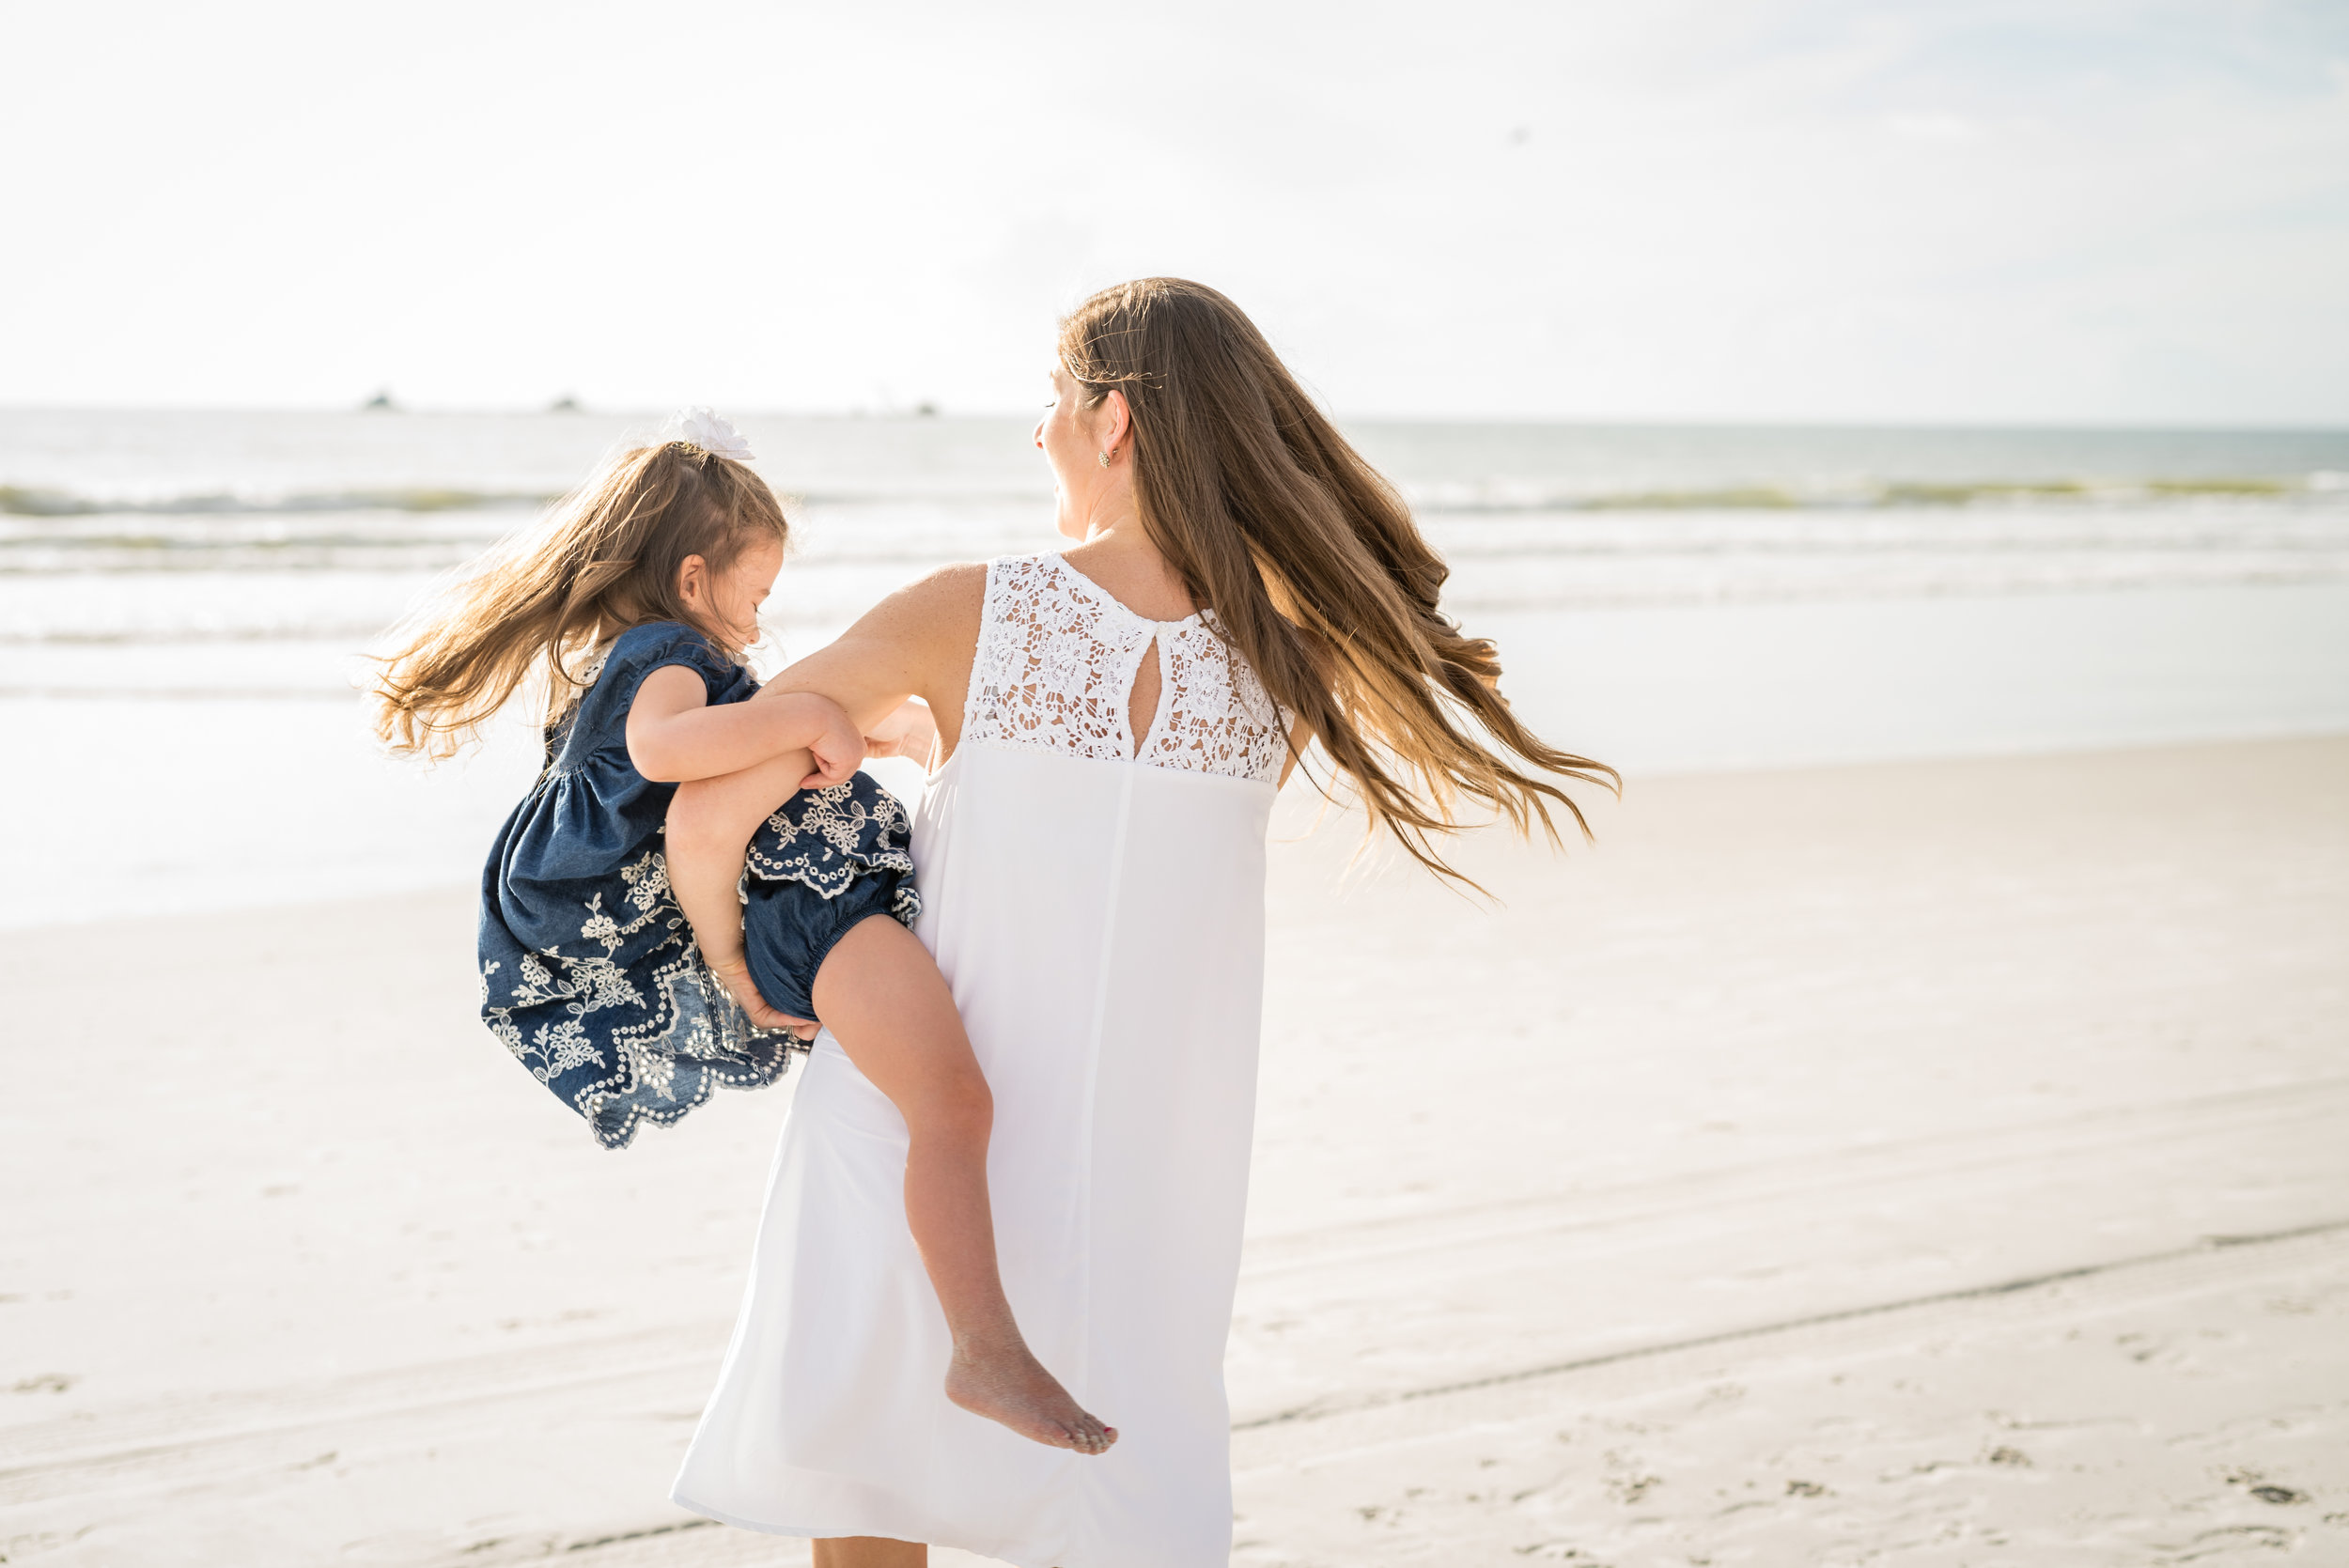 beachfamilyphotos-kristingroverimages.jpg